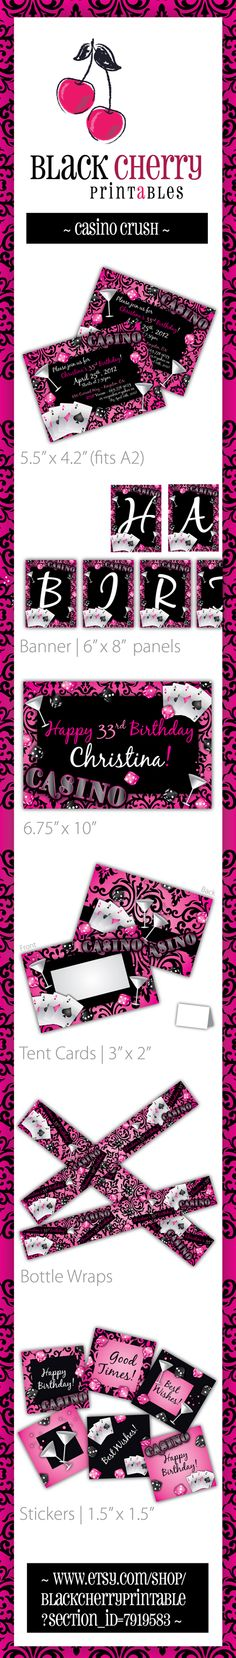 PRINTABLE ~ Casino Birthday Party ~ SET from Black Cherry Printable Party Designs! These are the an awesome way to start your themed party celebration! ~ {INVITES . STICKERS . BOTTLE WRAPS . BANNERS . THANK YOU CARDS . TENT CARDS . LABELS . TAGS & MORE!} https://www.etsy.com/listing/91183810/casino-party-invitations-printable